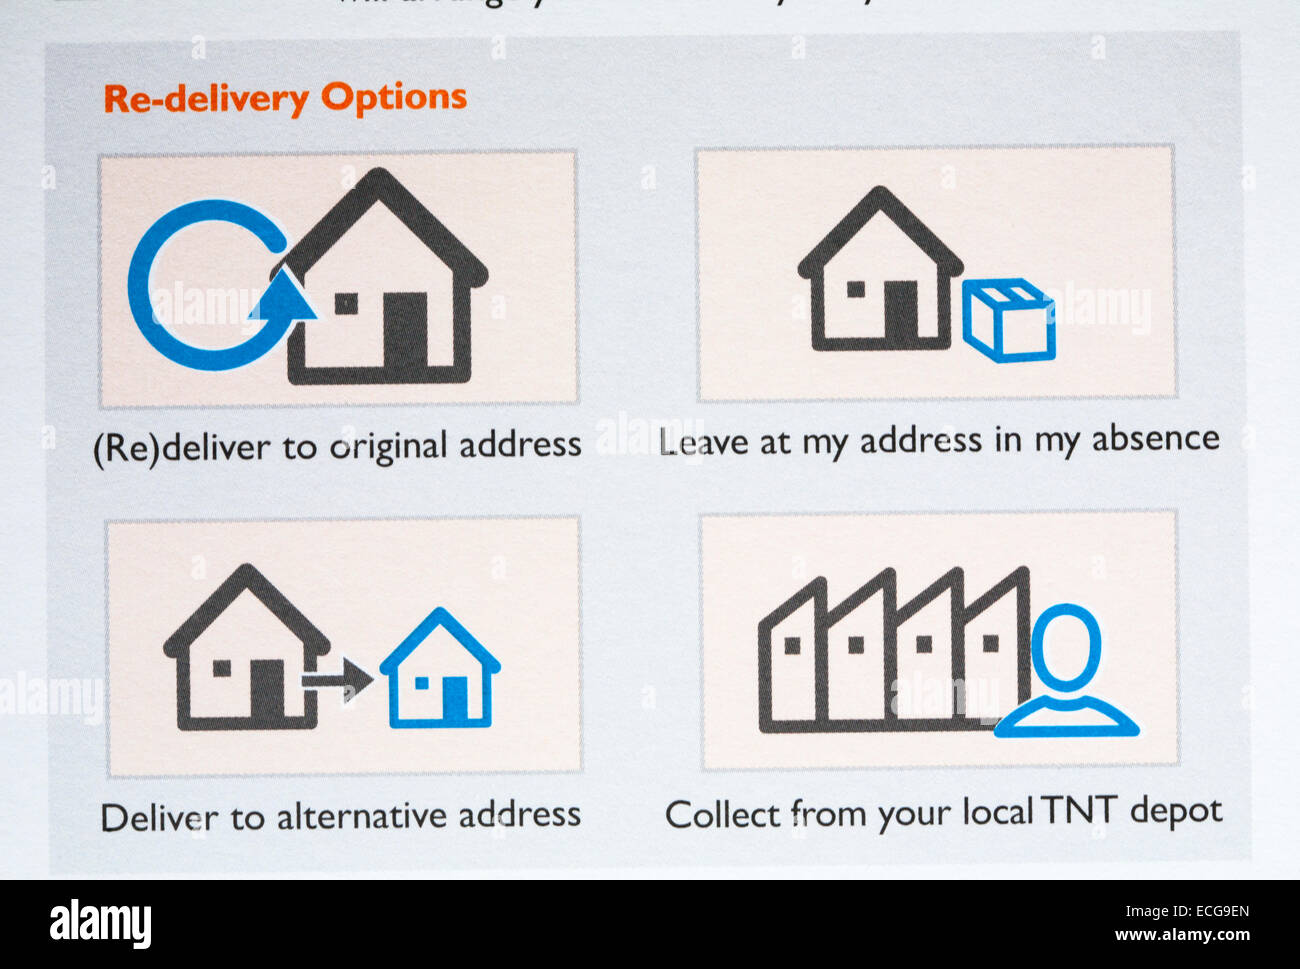 Re-delivery options on TNT sorry we missed you card - Stock Image